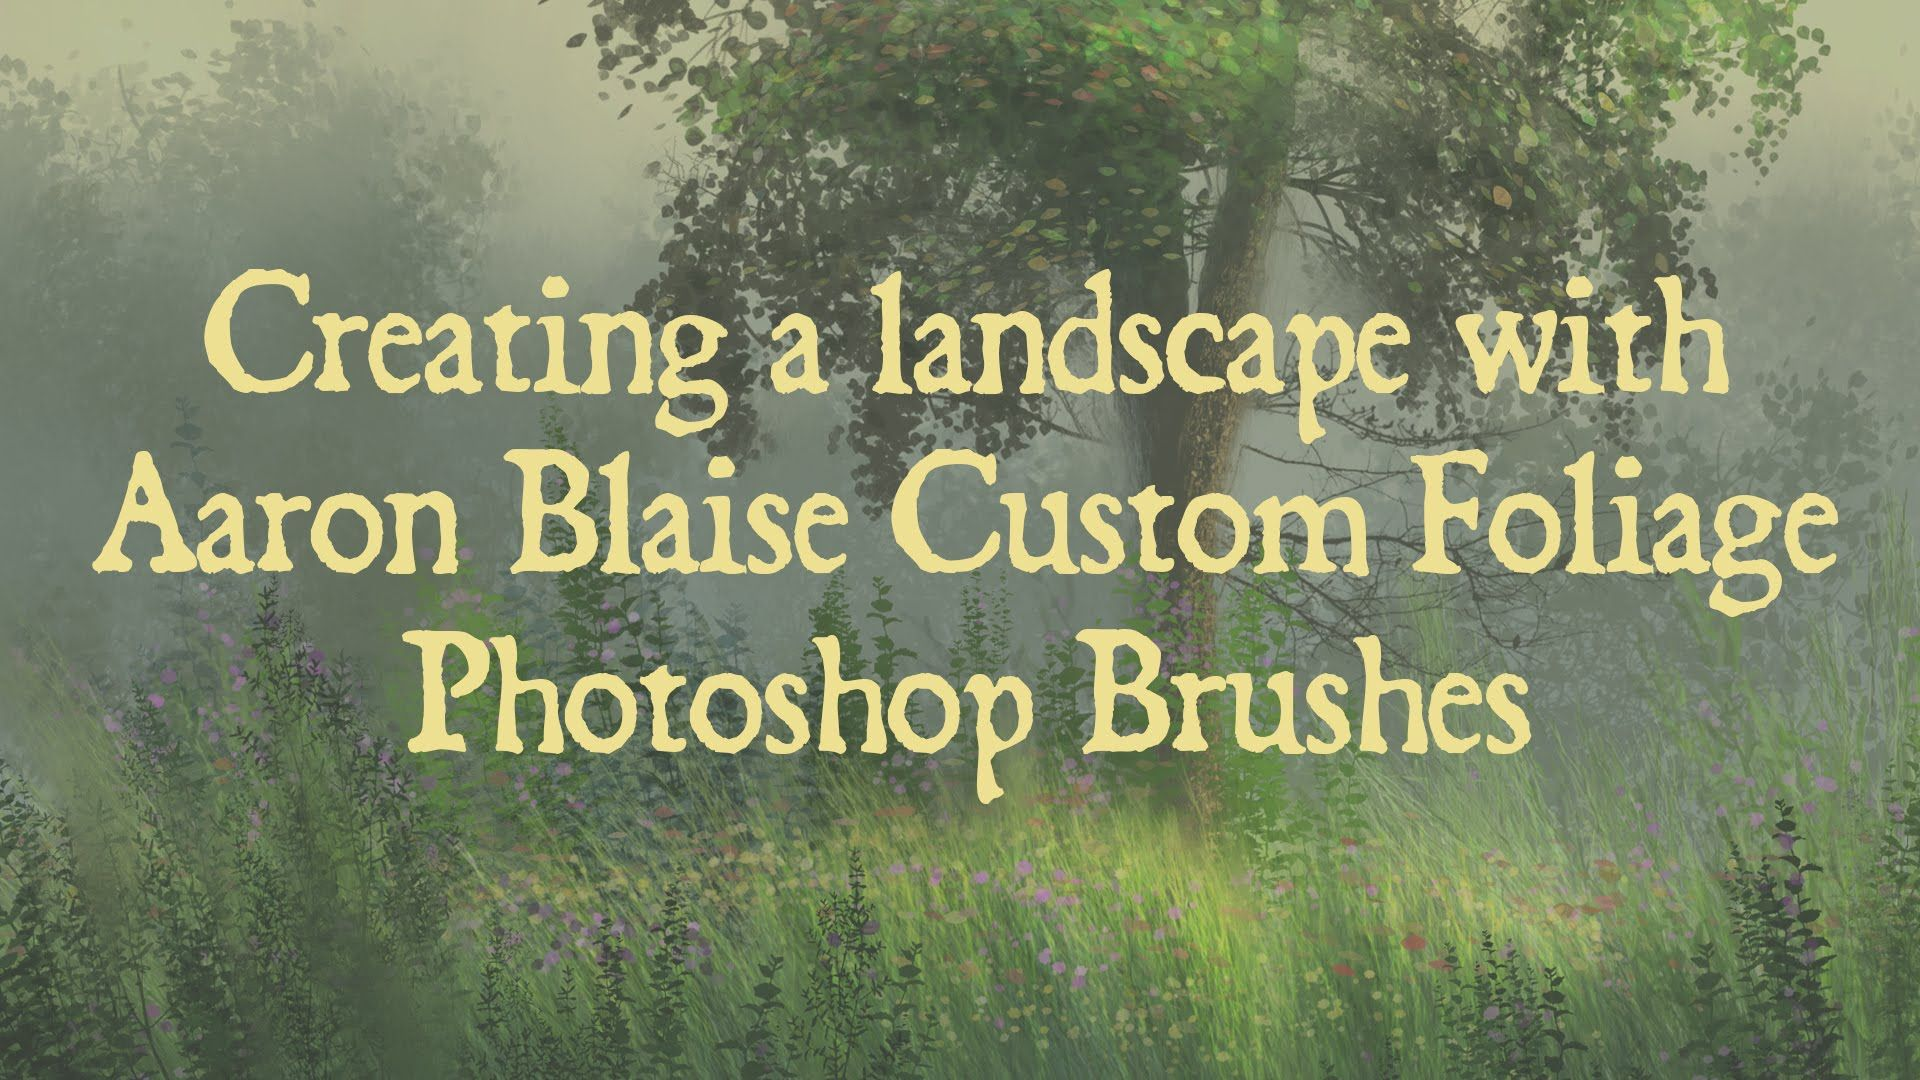 Photoshop tutorial custom foliage brushes by aaron blaise blog photoshop tutorial custom foliage brushes by aaron blaise blogwebsite baditri Image collections